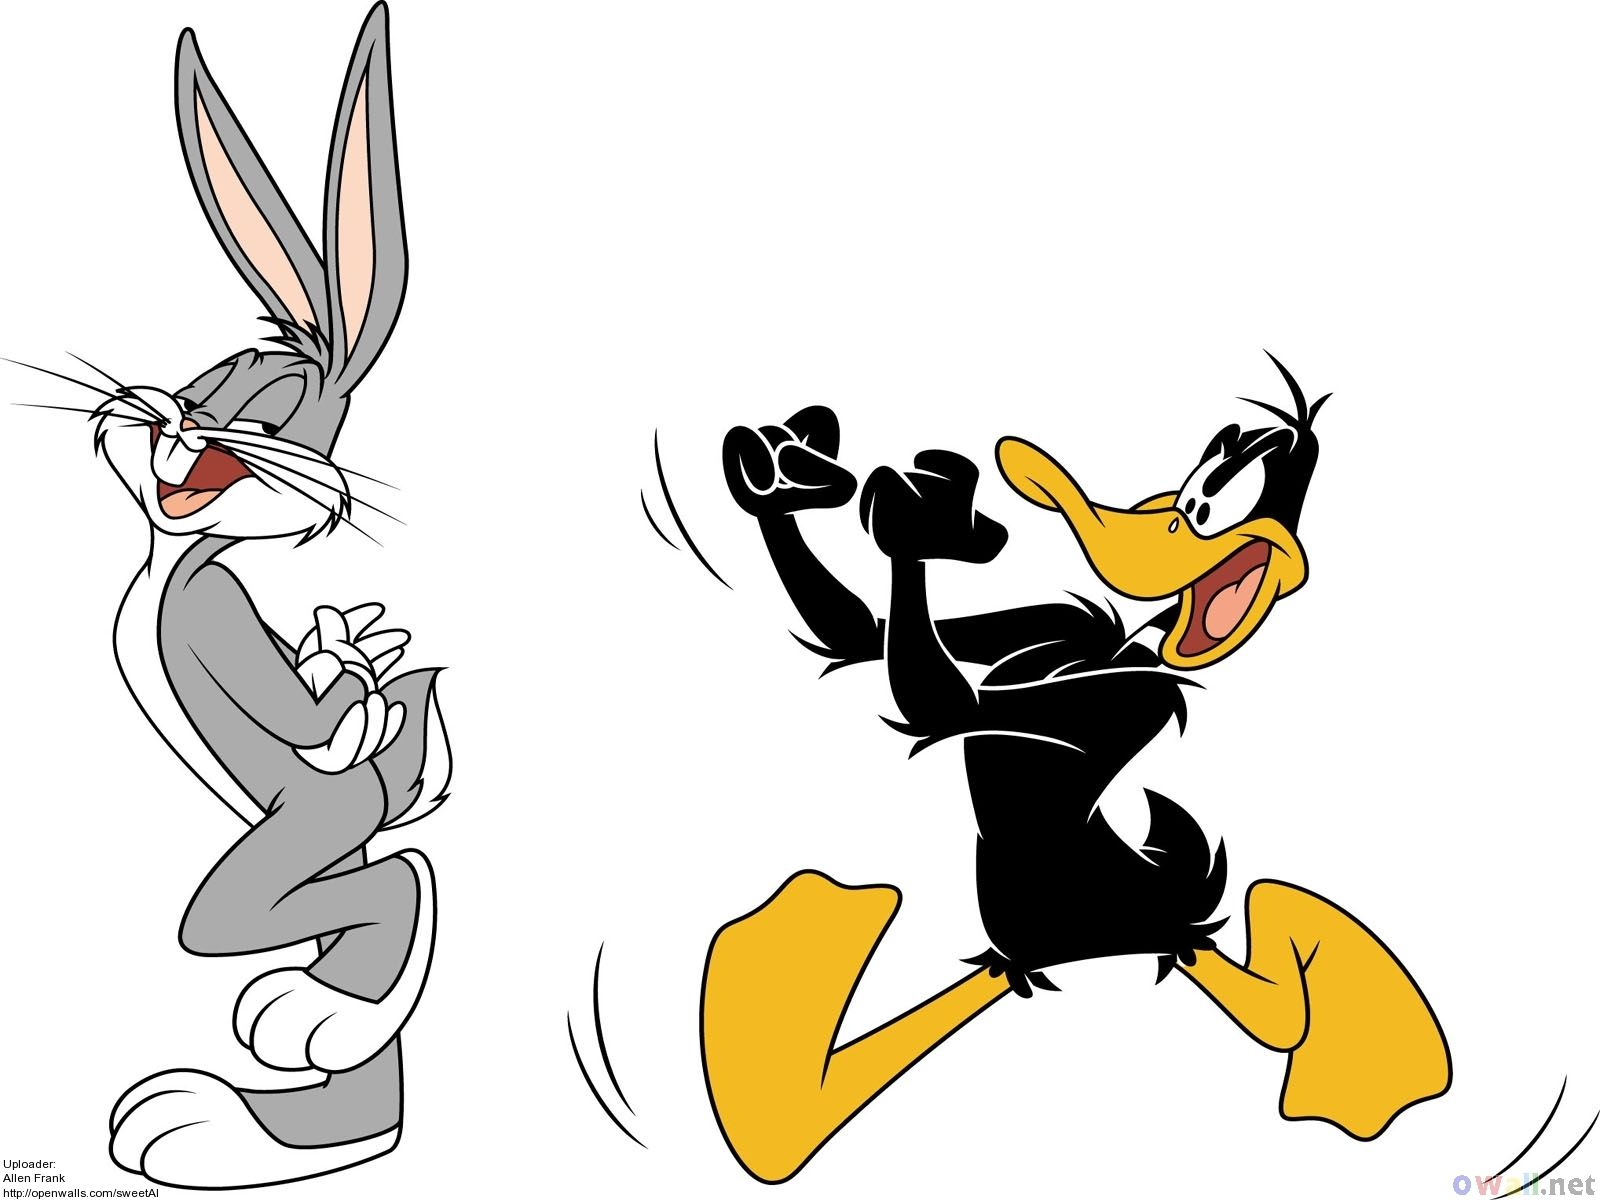 Bugs Bunny et Daffy Duck sexe gay